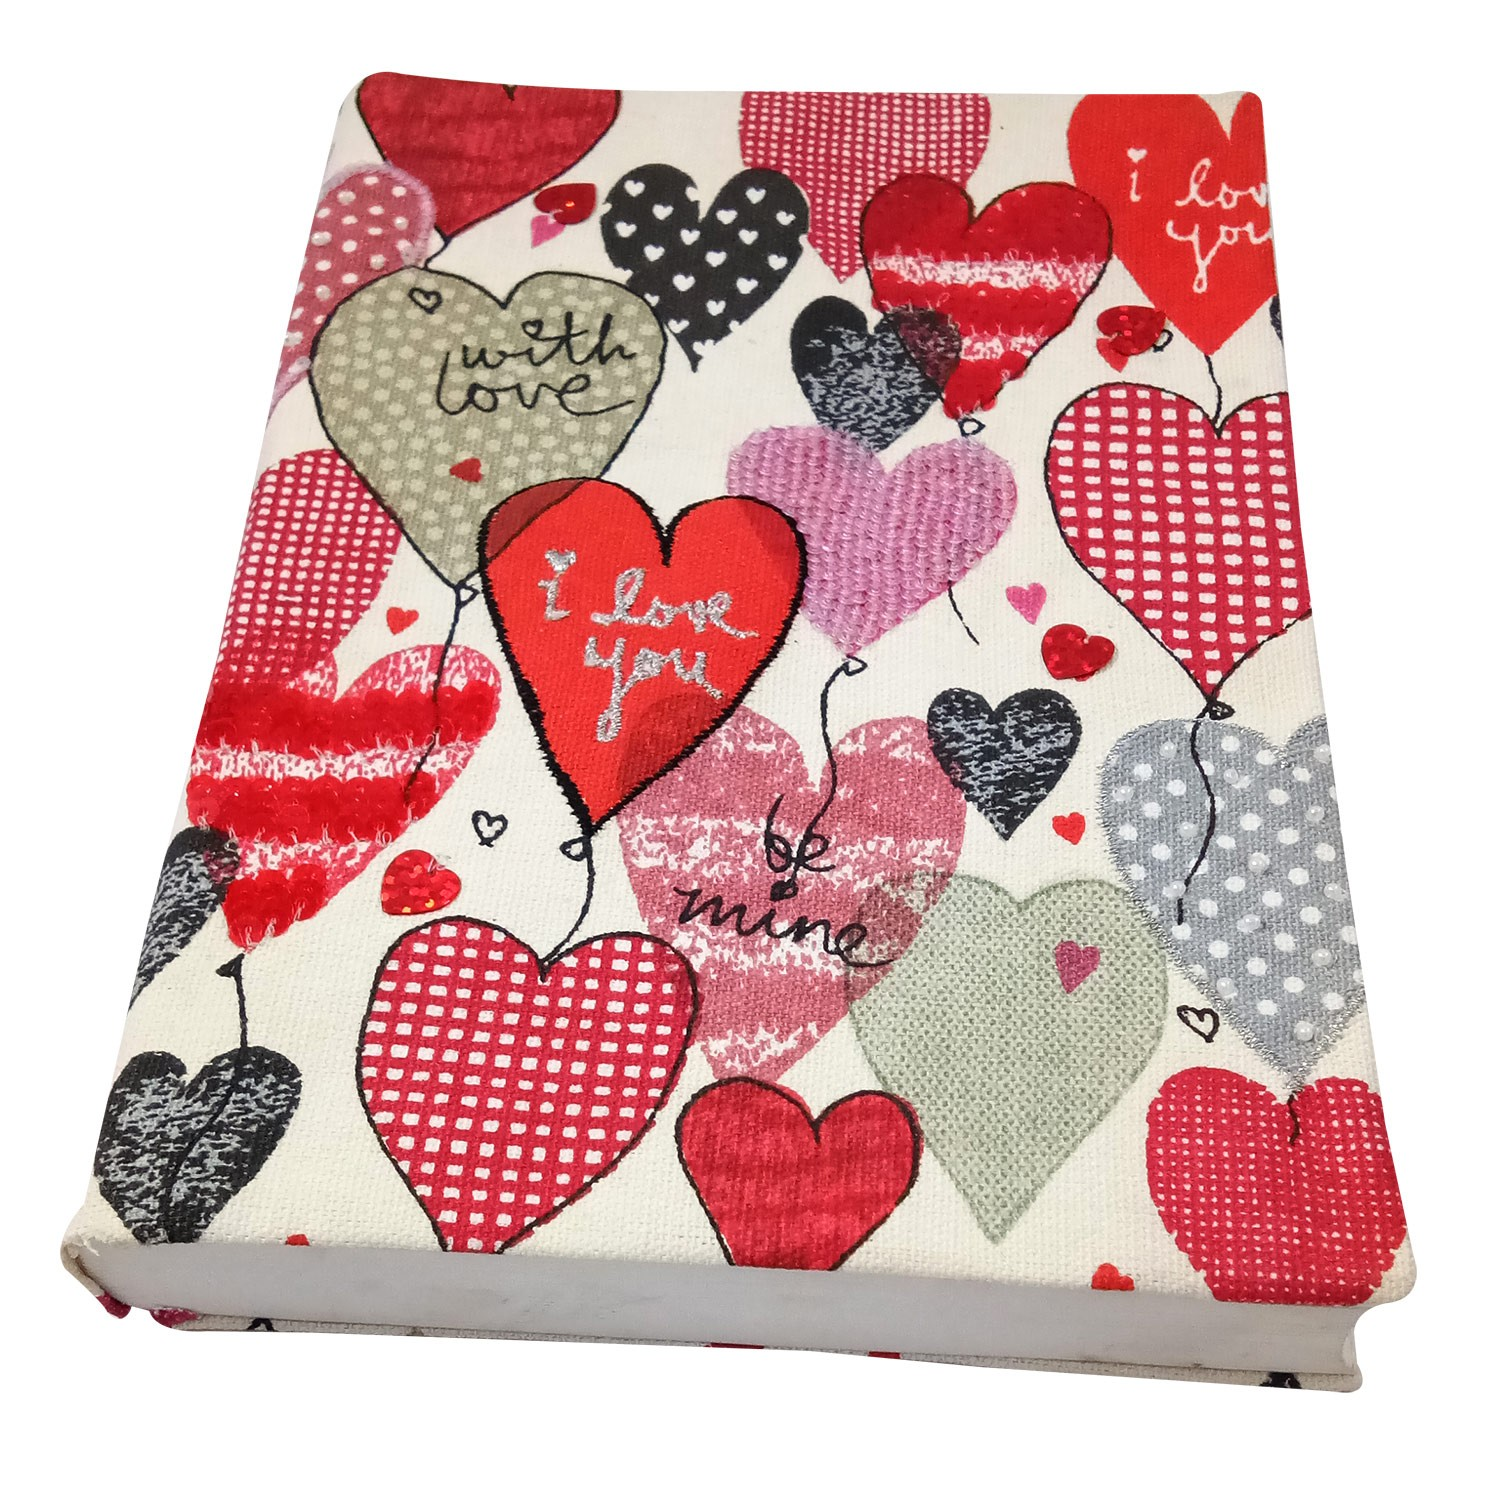 Attractive Handmade Cloth Diary with Cequin Work by people of urban slums